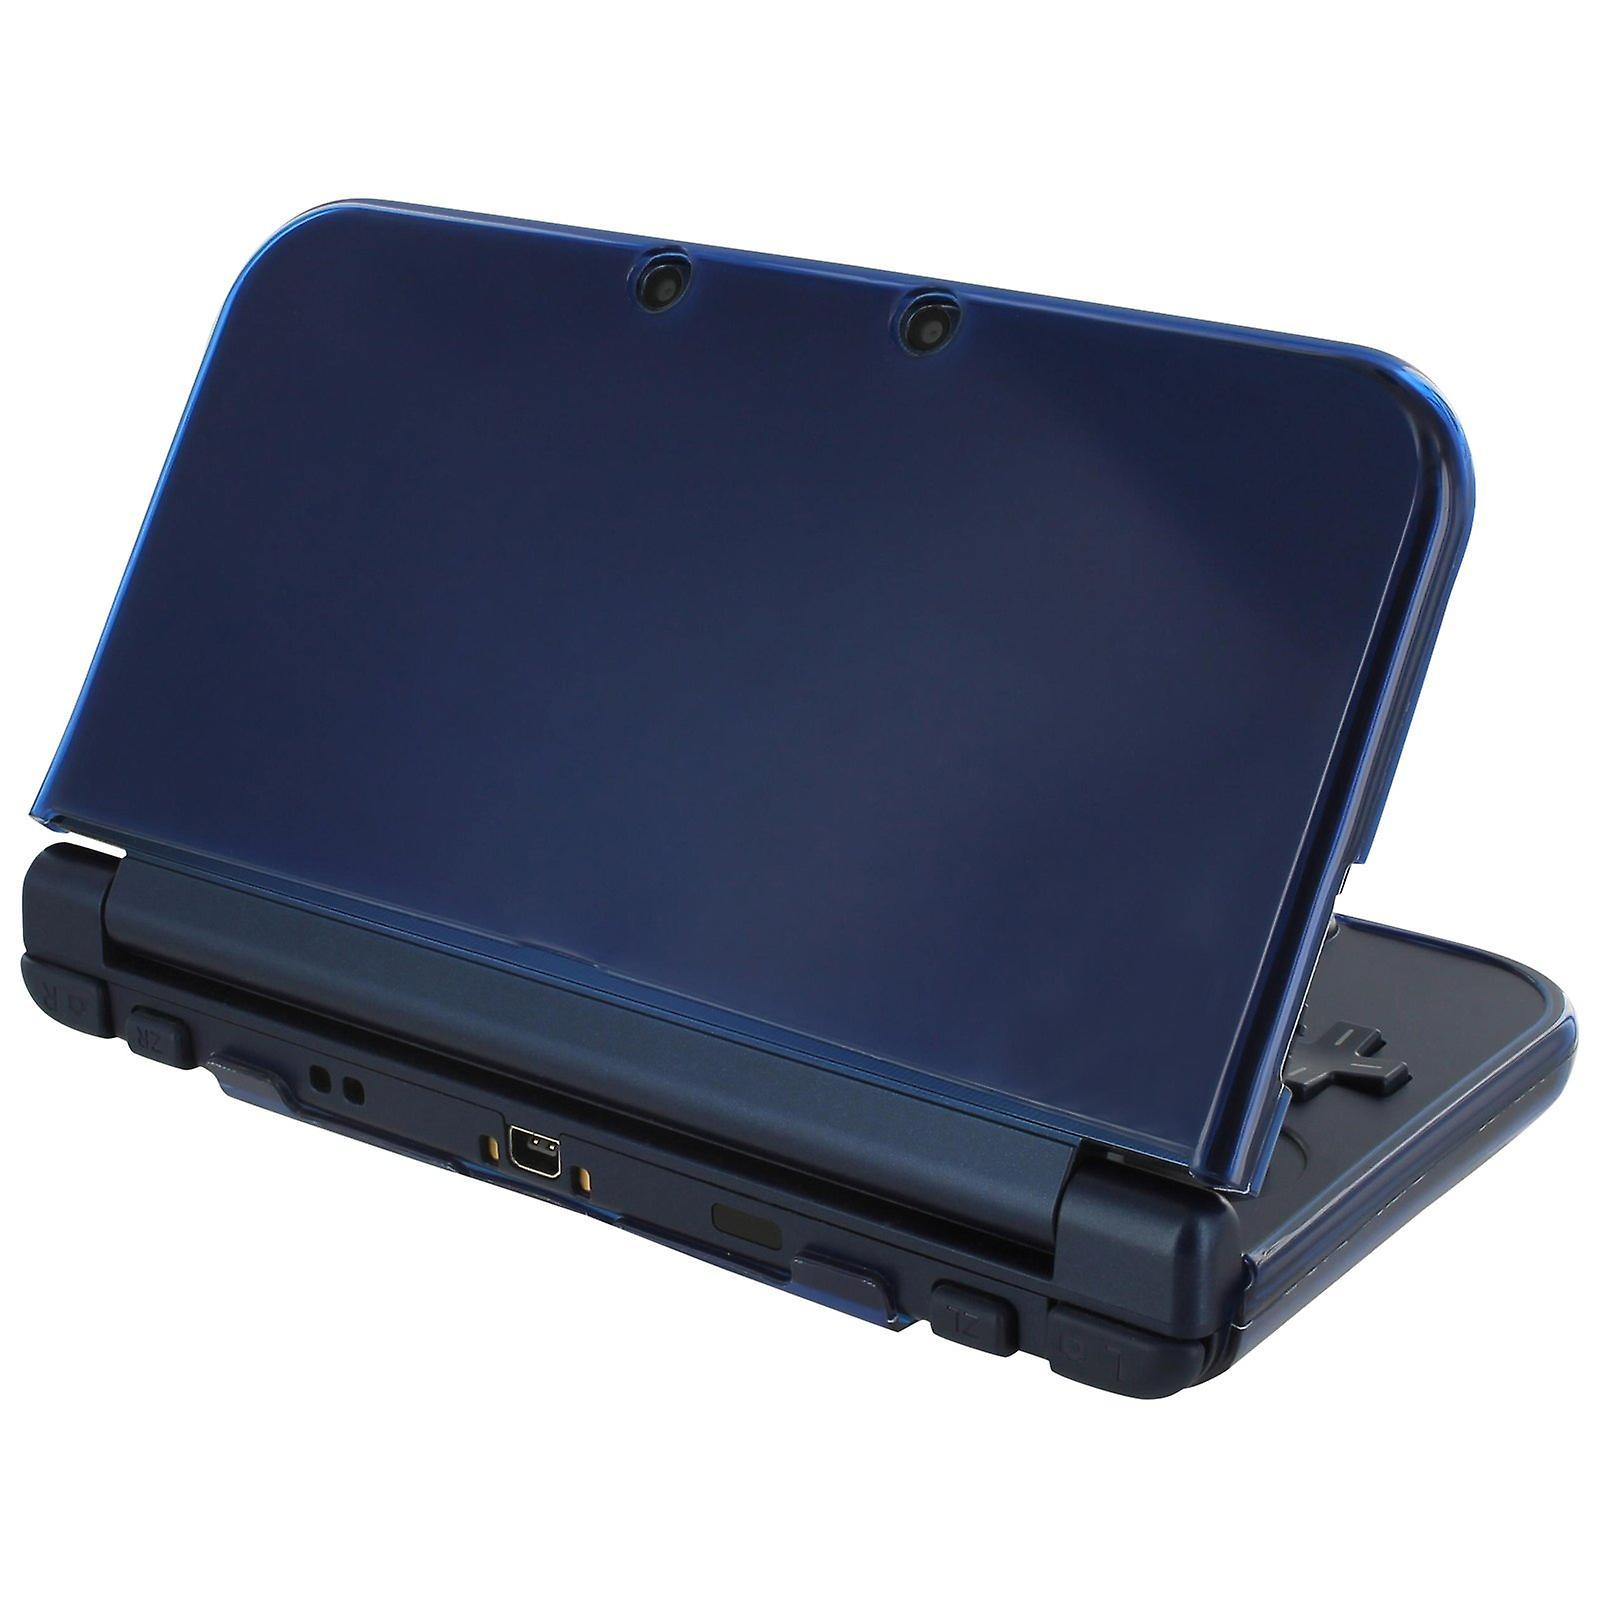 Zedlabz soft gel protective armor tpu case for new 3ds xl - frosted royal blue